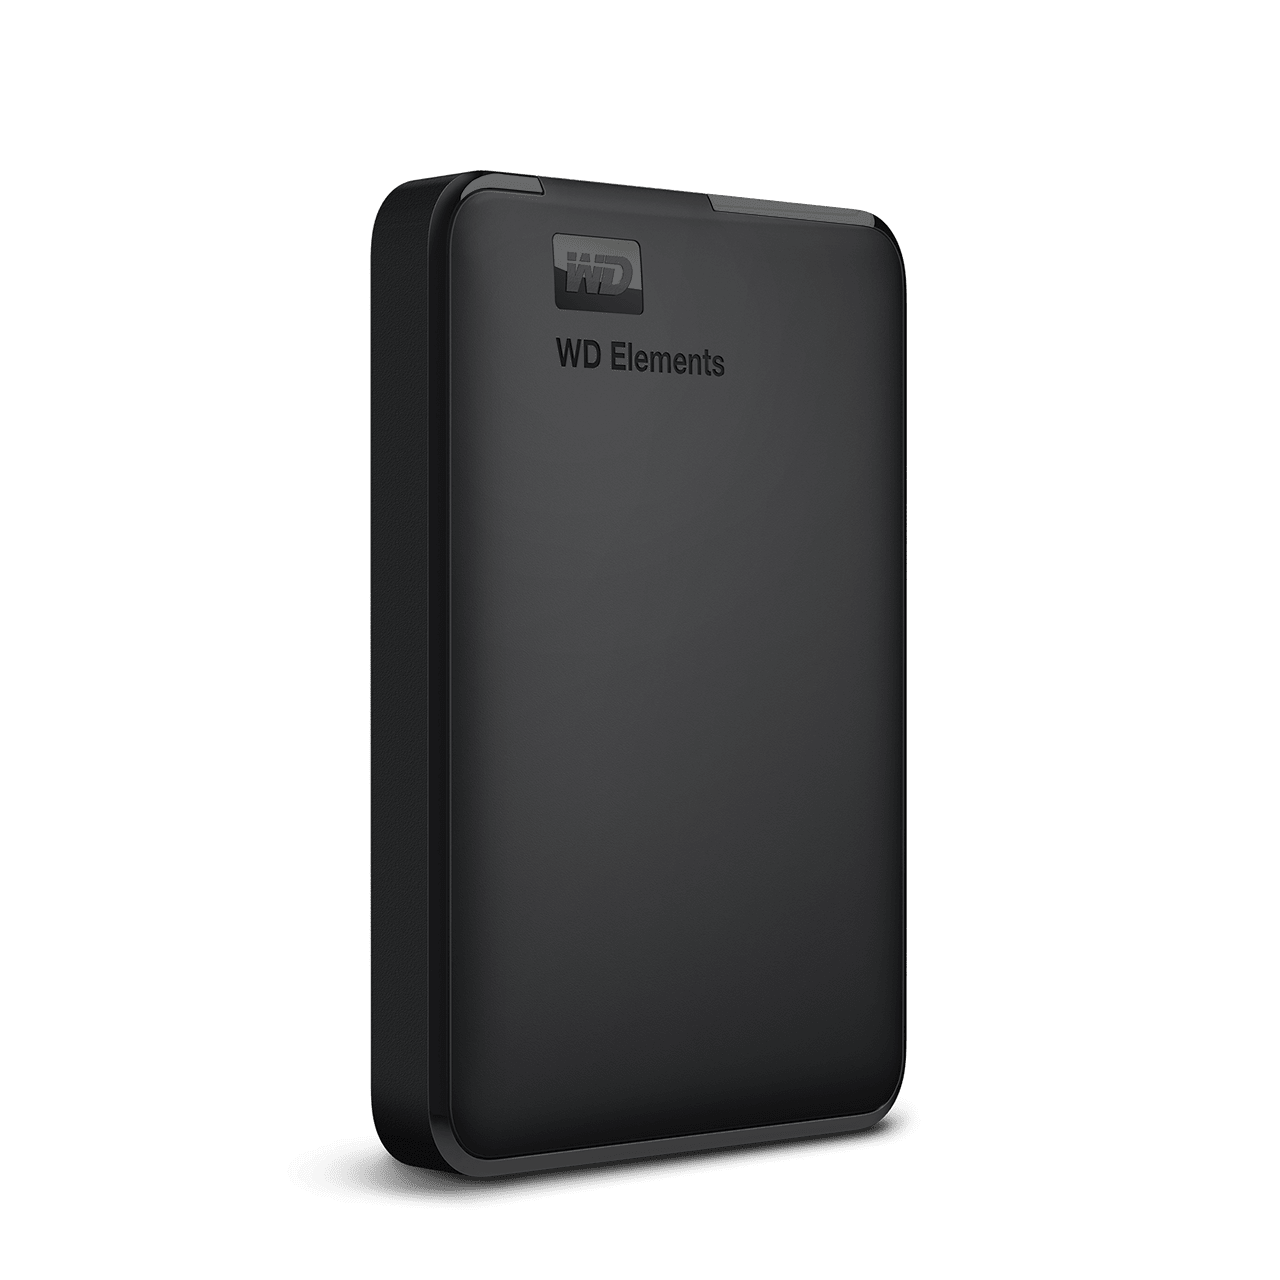 wd-elements-portable-1-2tb-right.png.thumb.1280.1280